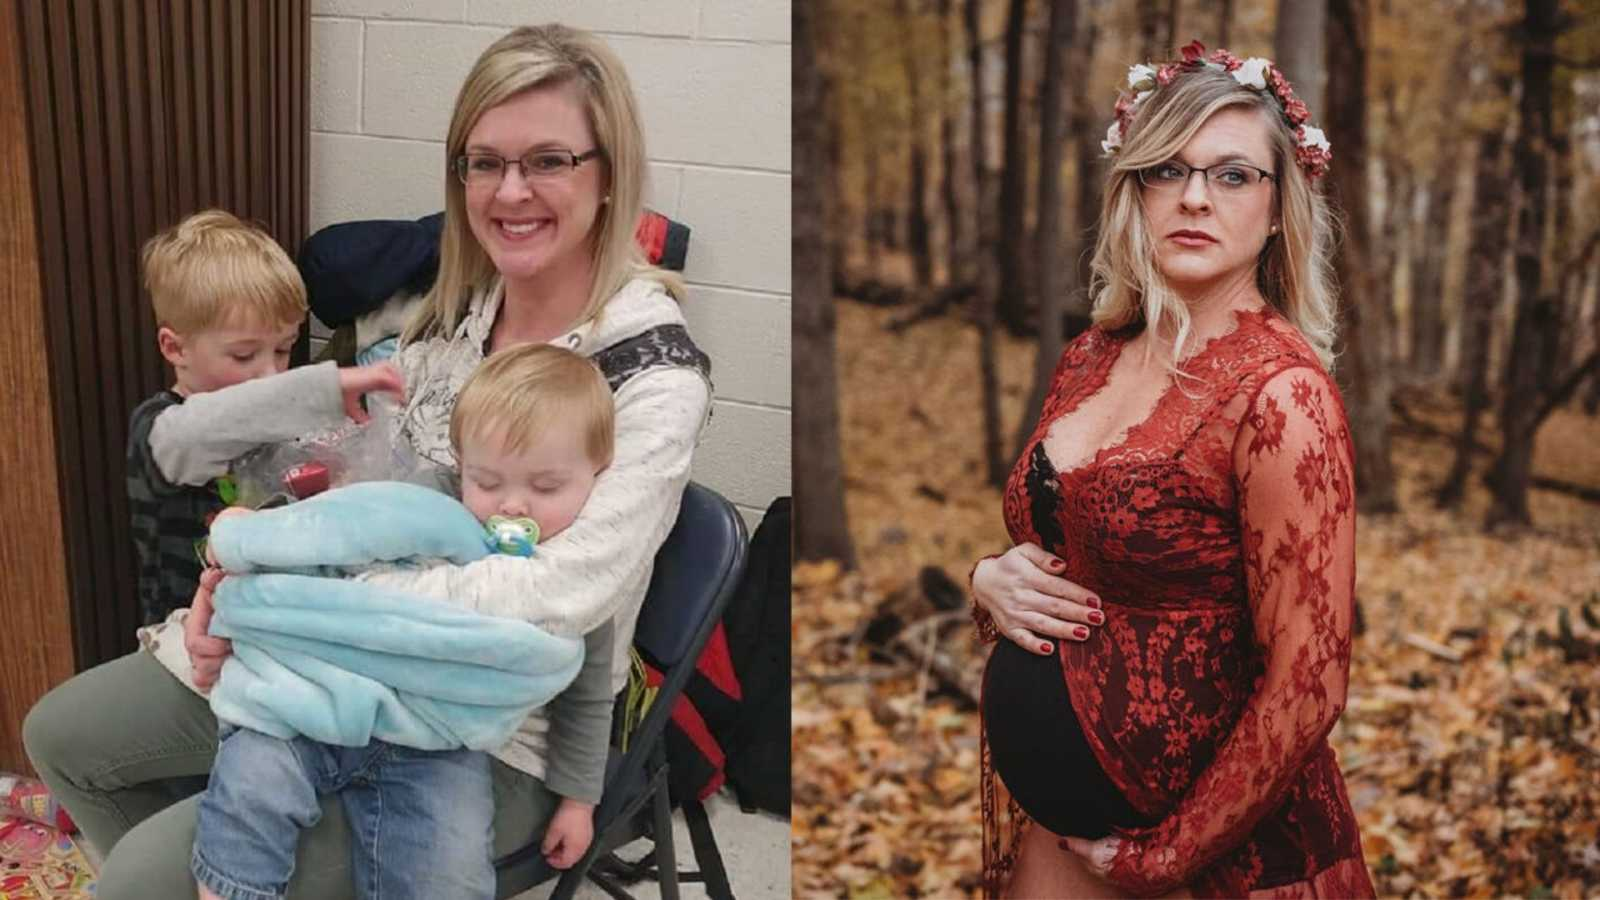 6 Weeks Pregnant With Our Surprise Third Baby My Husband Of 7 Years Packed His Bags And Left Me Woman Empowered To Embrace Single Parenting After Husband Leaves Her During Pregnancy You